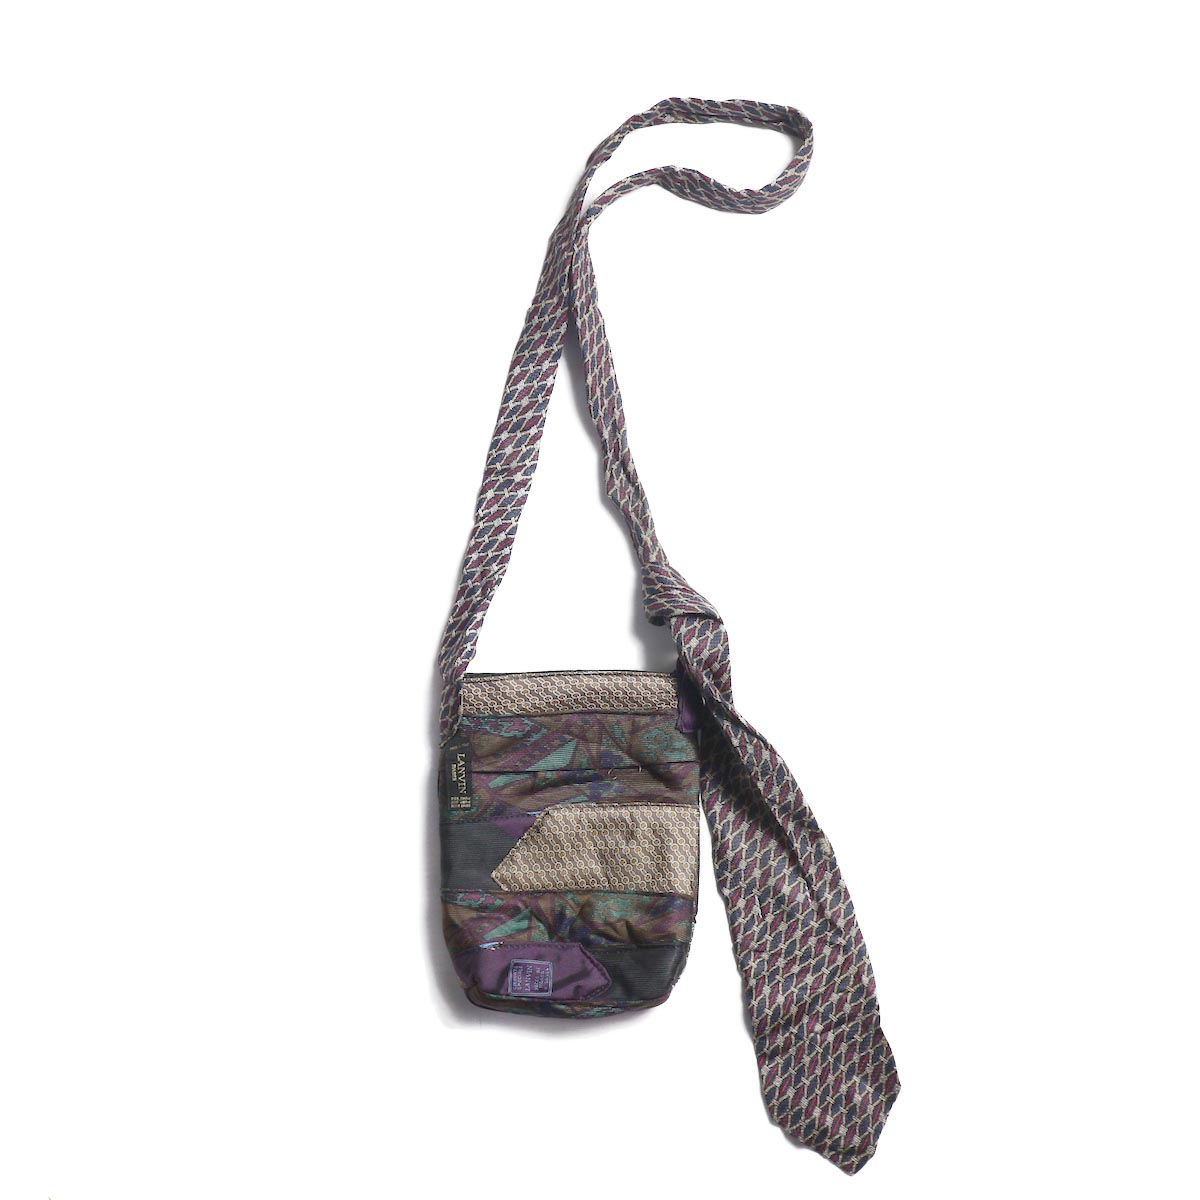 OLD PARK / NECKTIE BAG -a